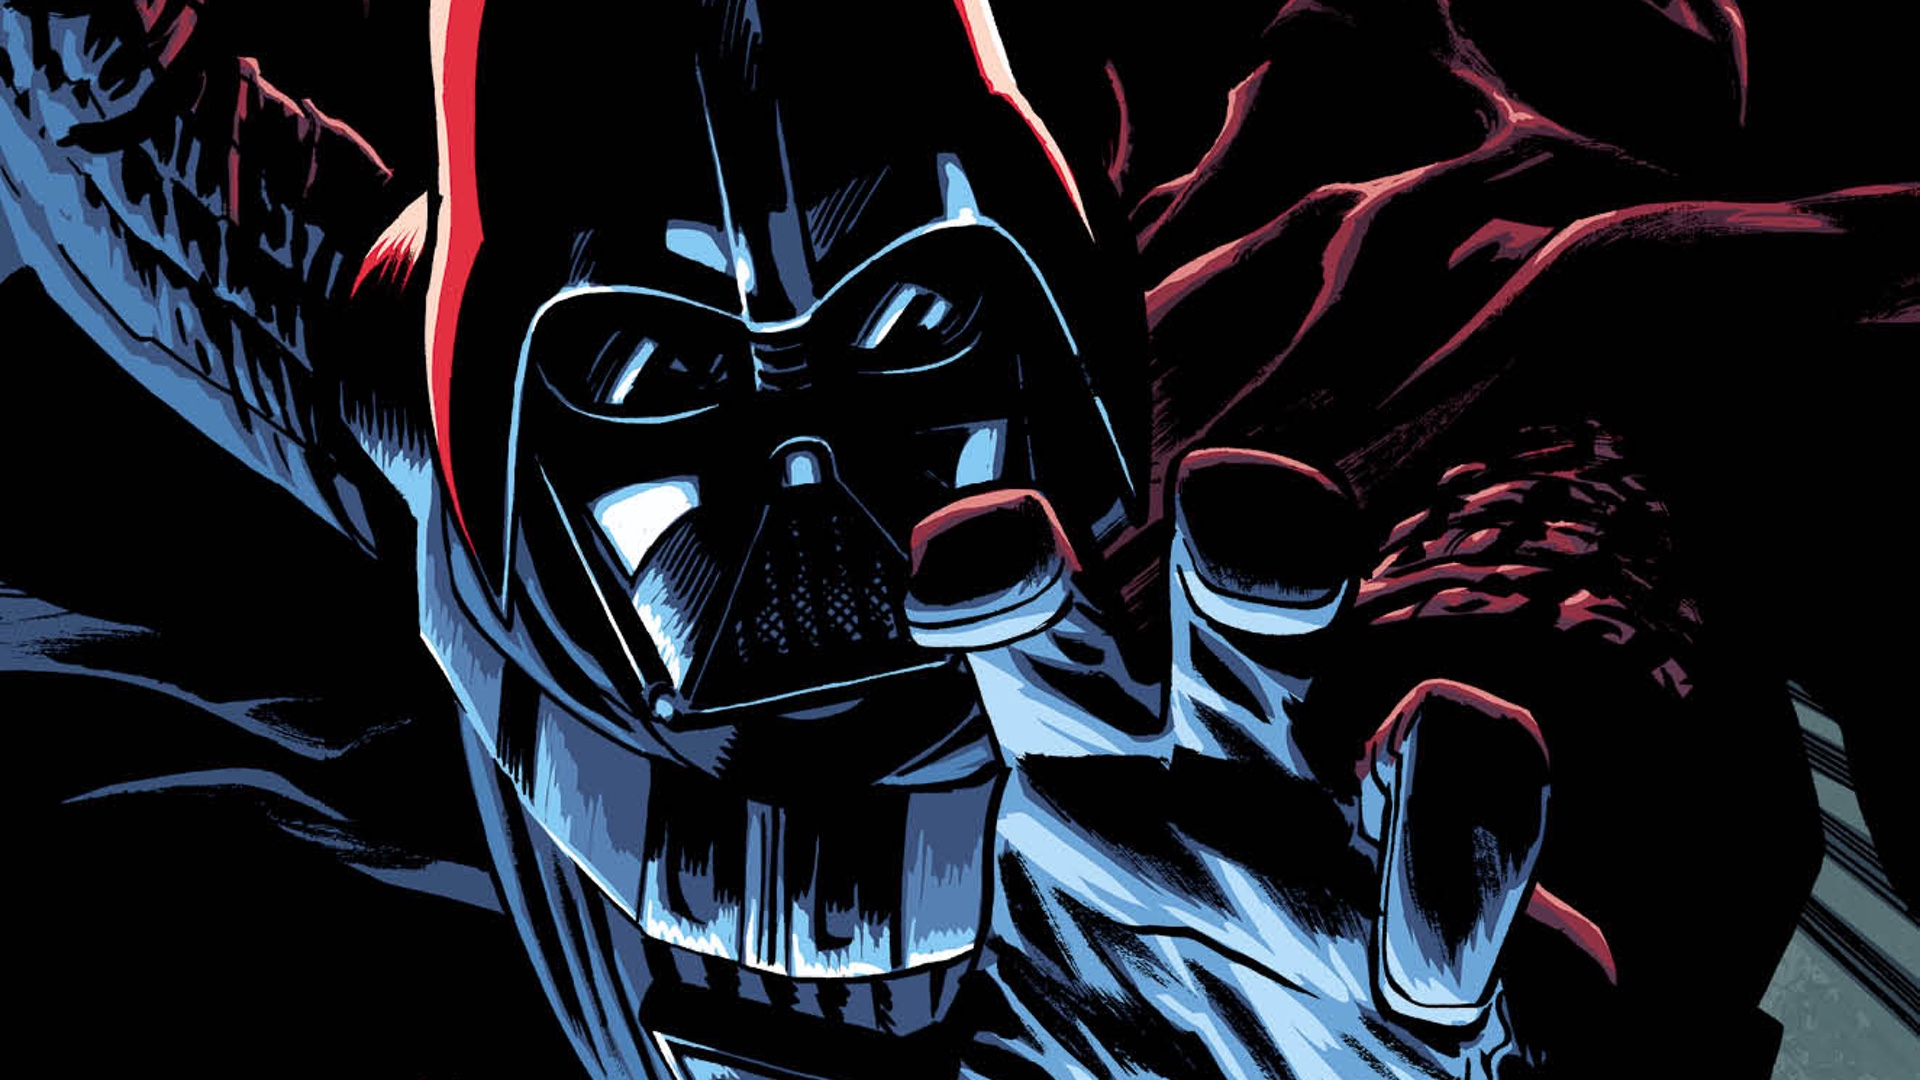 Anakin Skywalker S Father Has Been Revealed In Latest Darth Vader